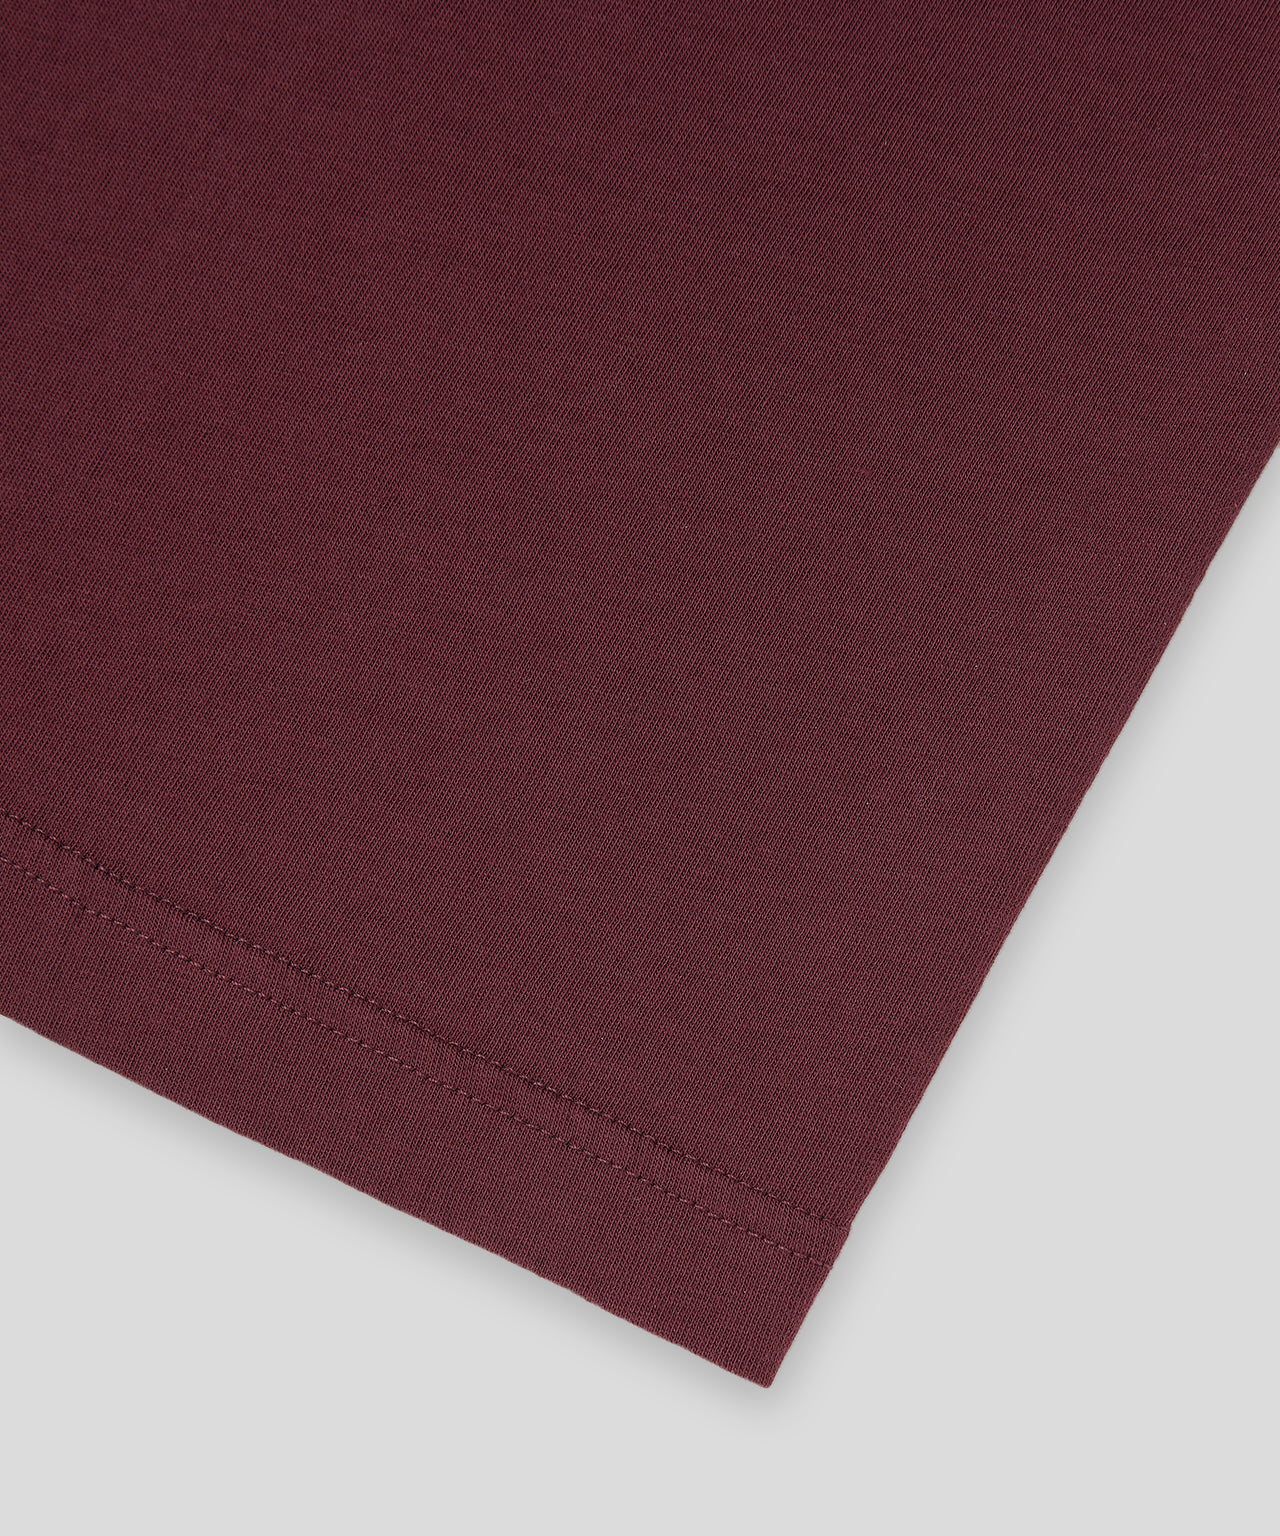 T-Shirt MOM - burgundy red